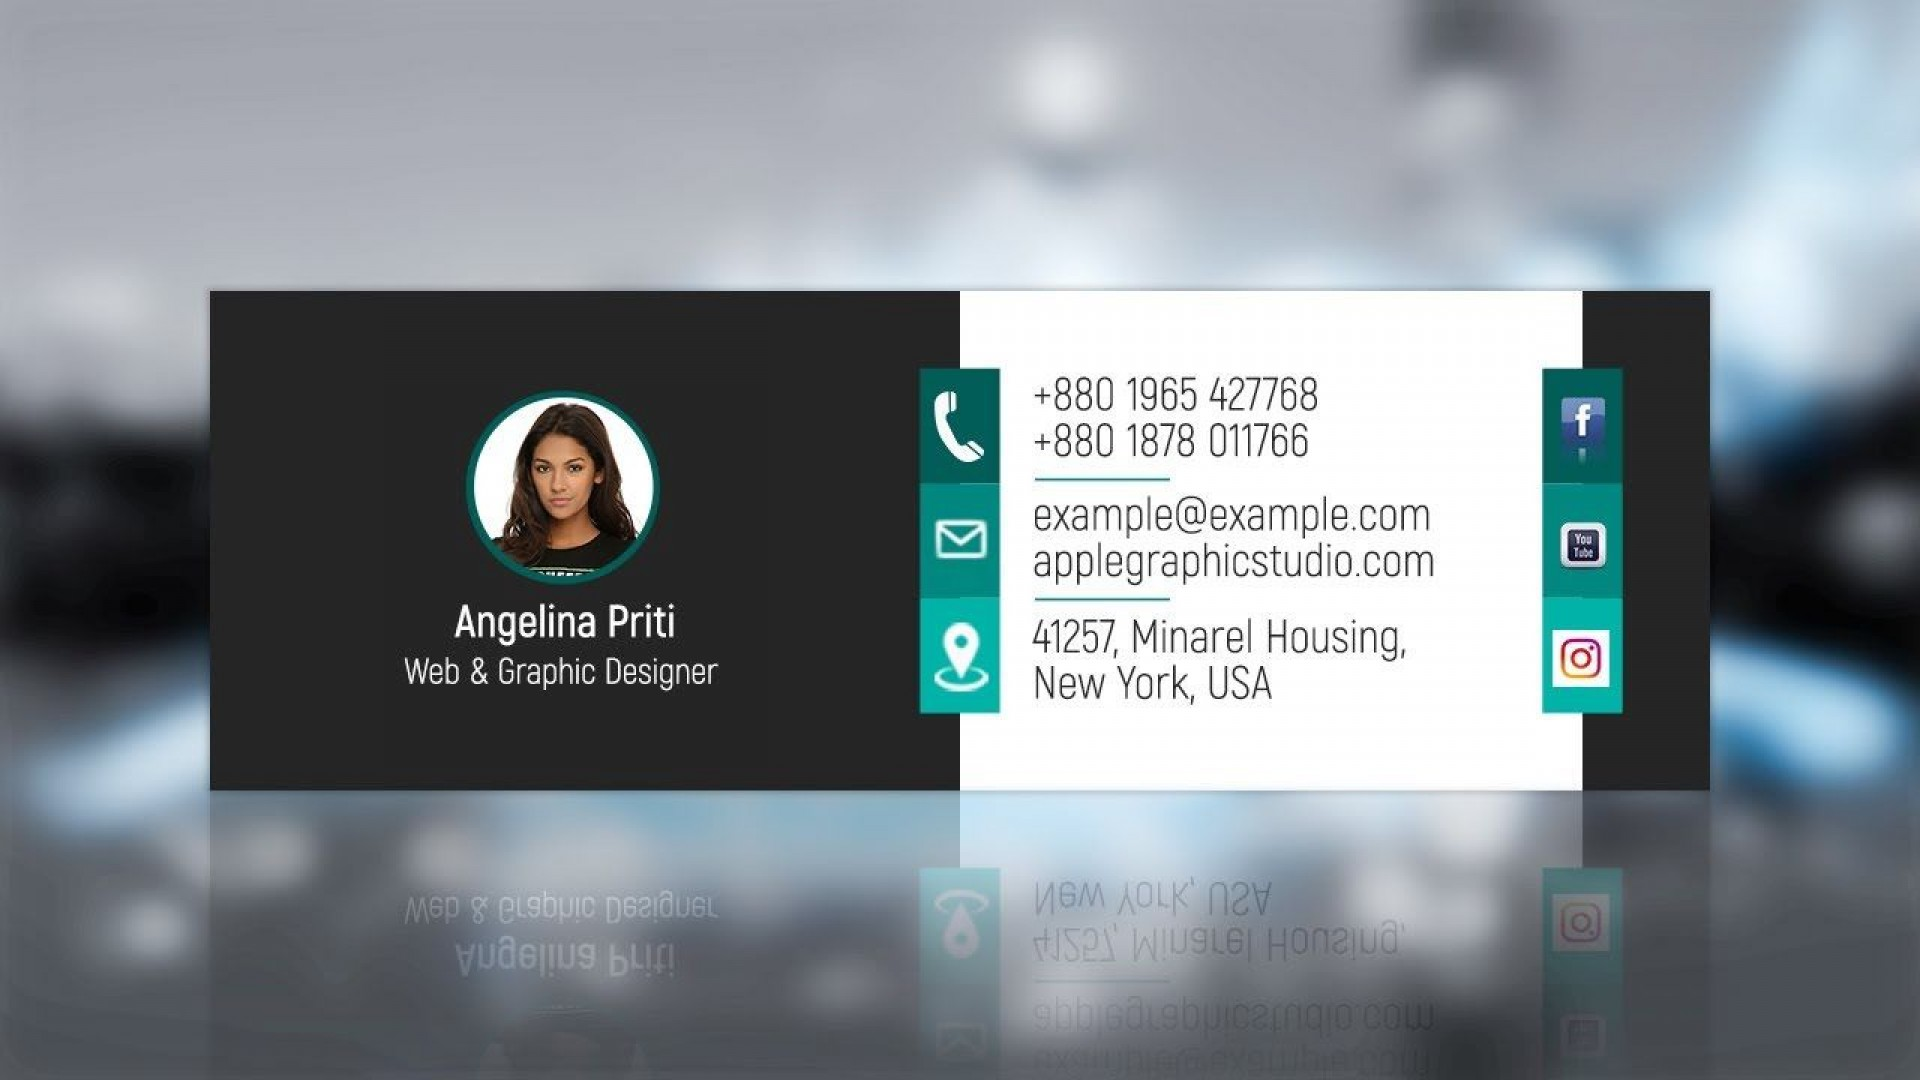 003 Breathtaking Email Signature Design Outlook Free Photo 1920